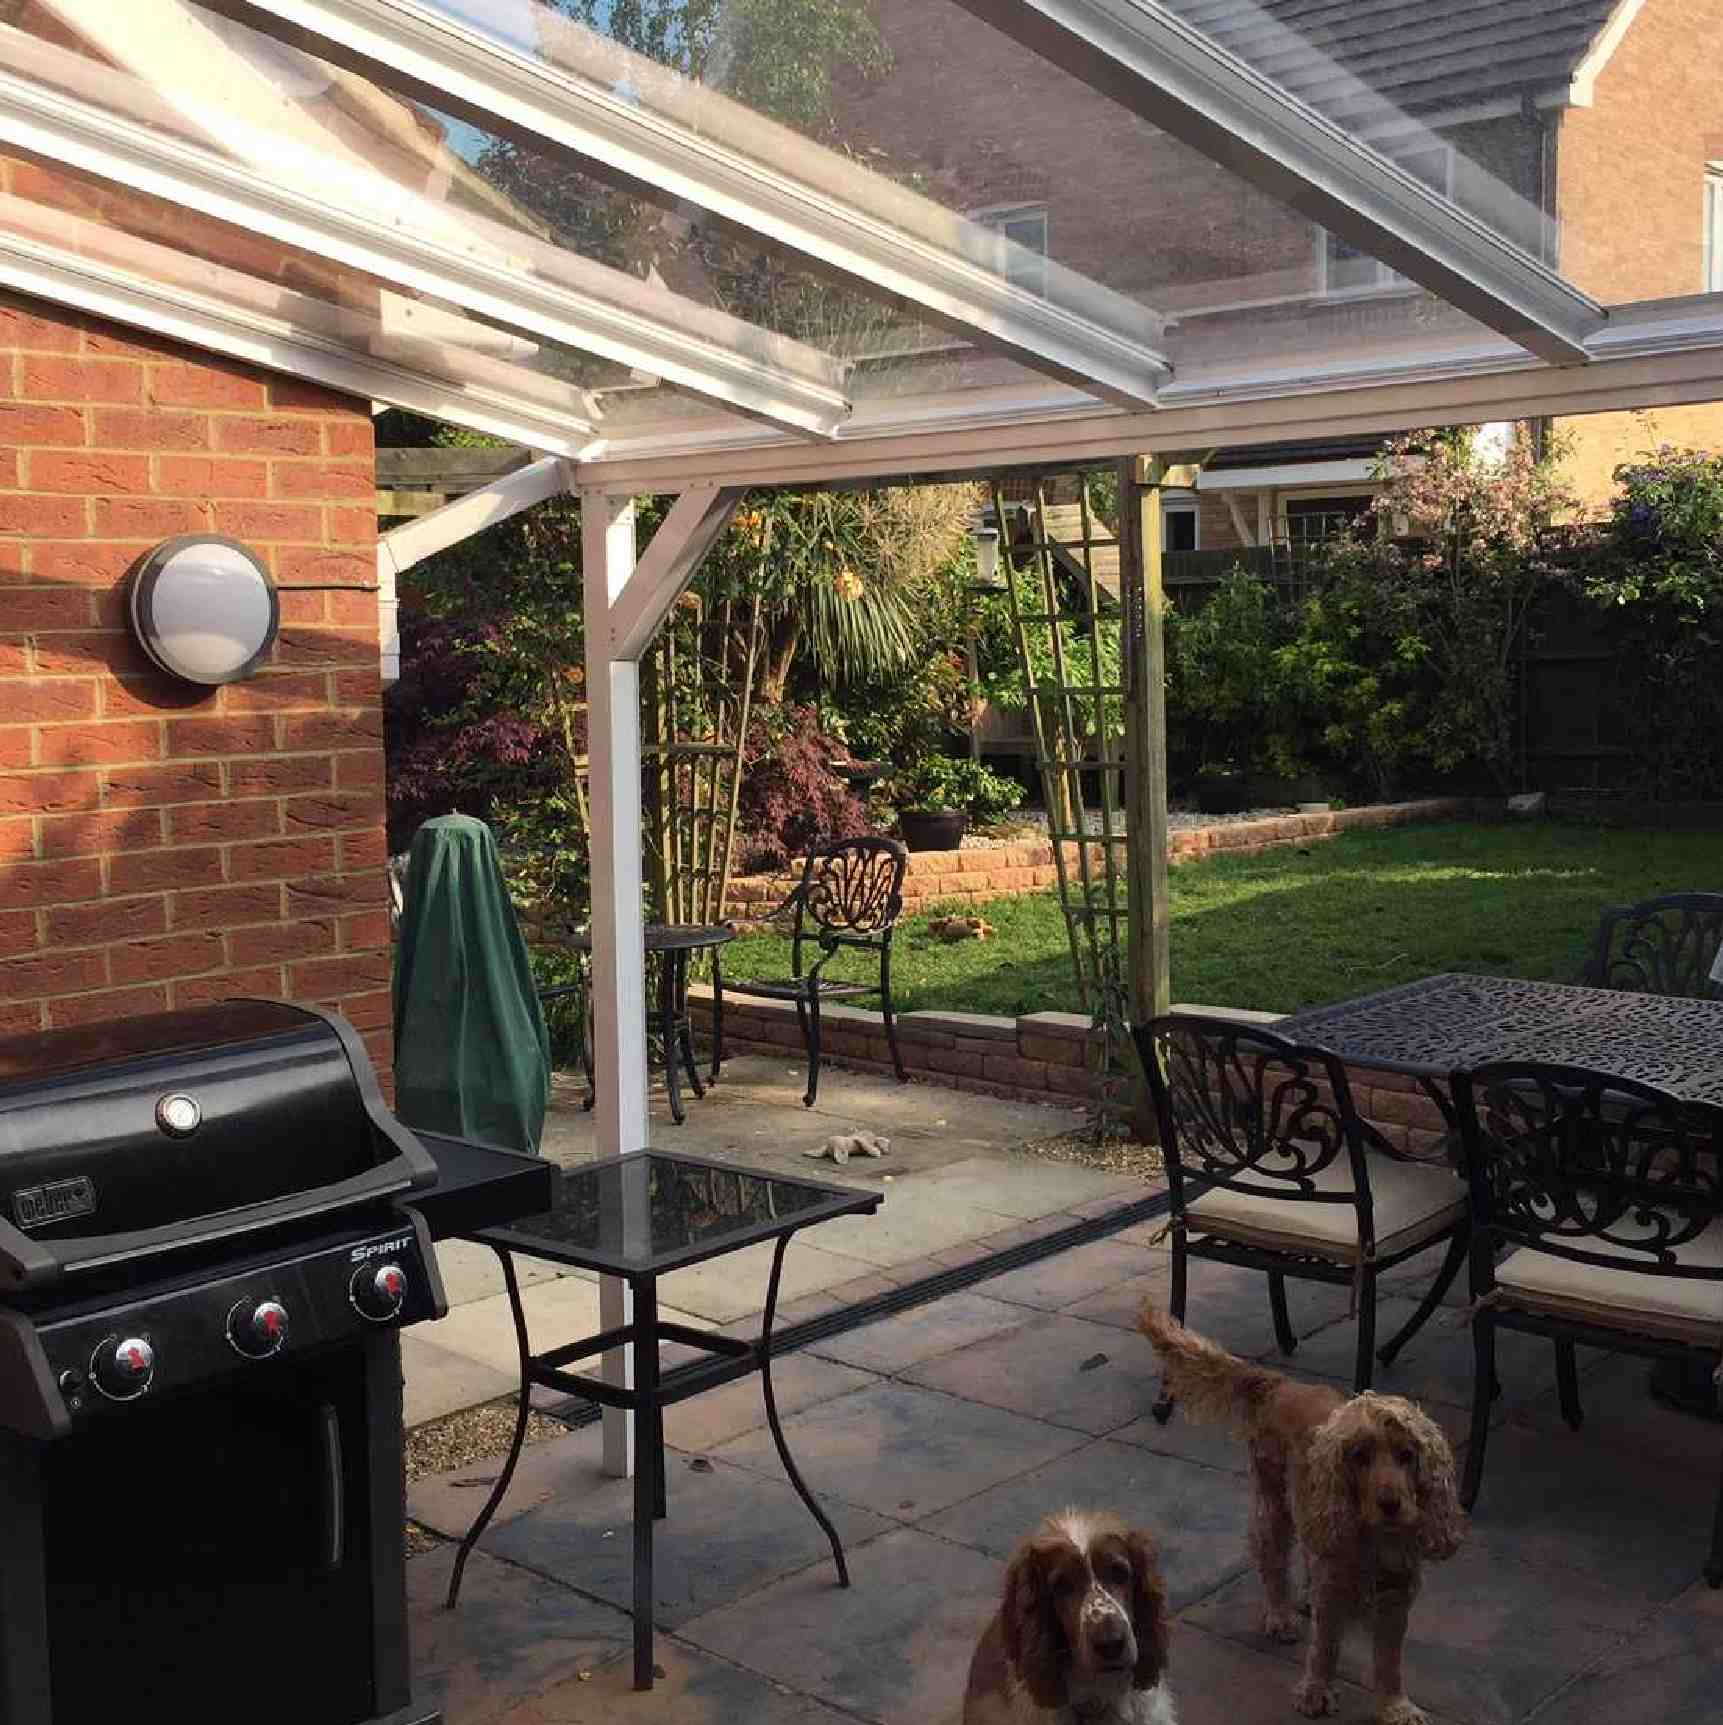 Omega Verandah with 16mm Polycarbonate Glazing - 4.2m (W) x 3.0m (P), (3) Supporting Posts